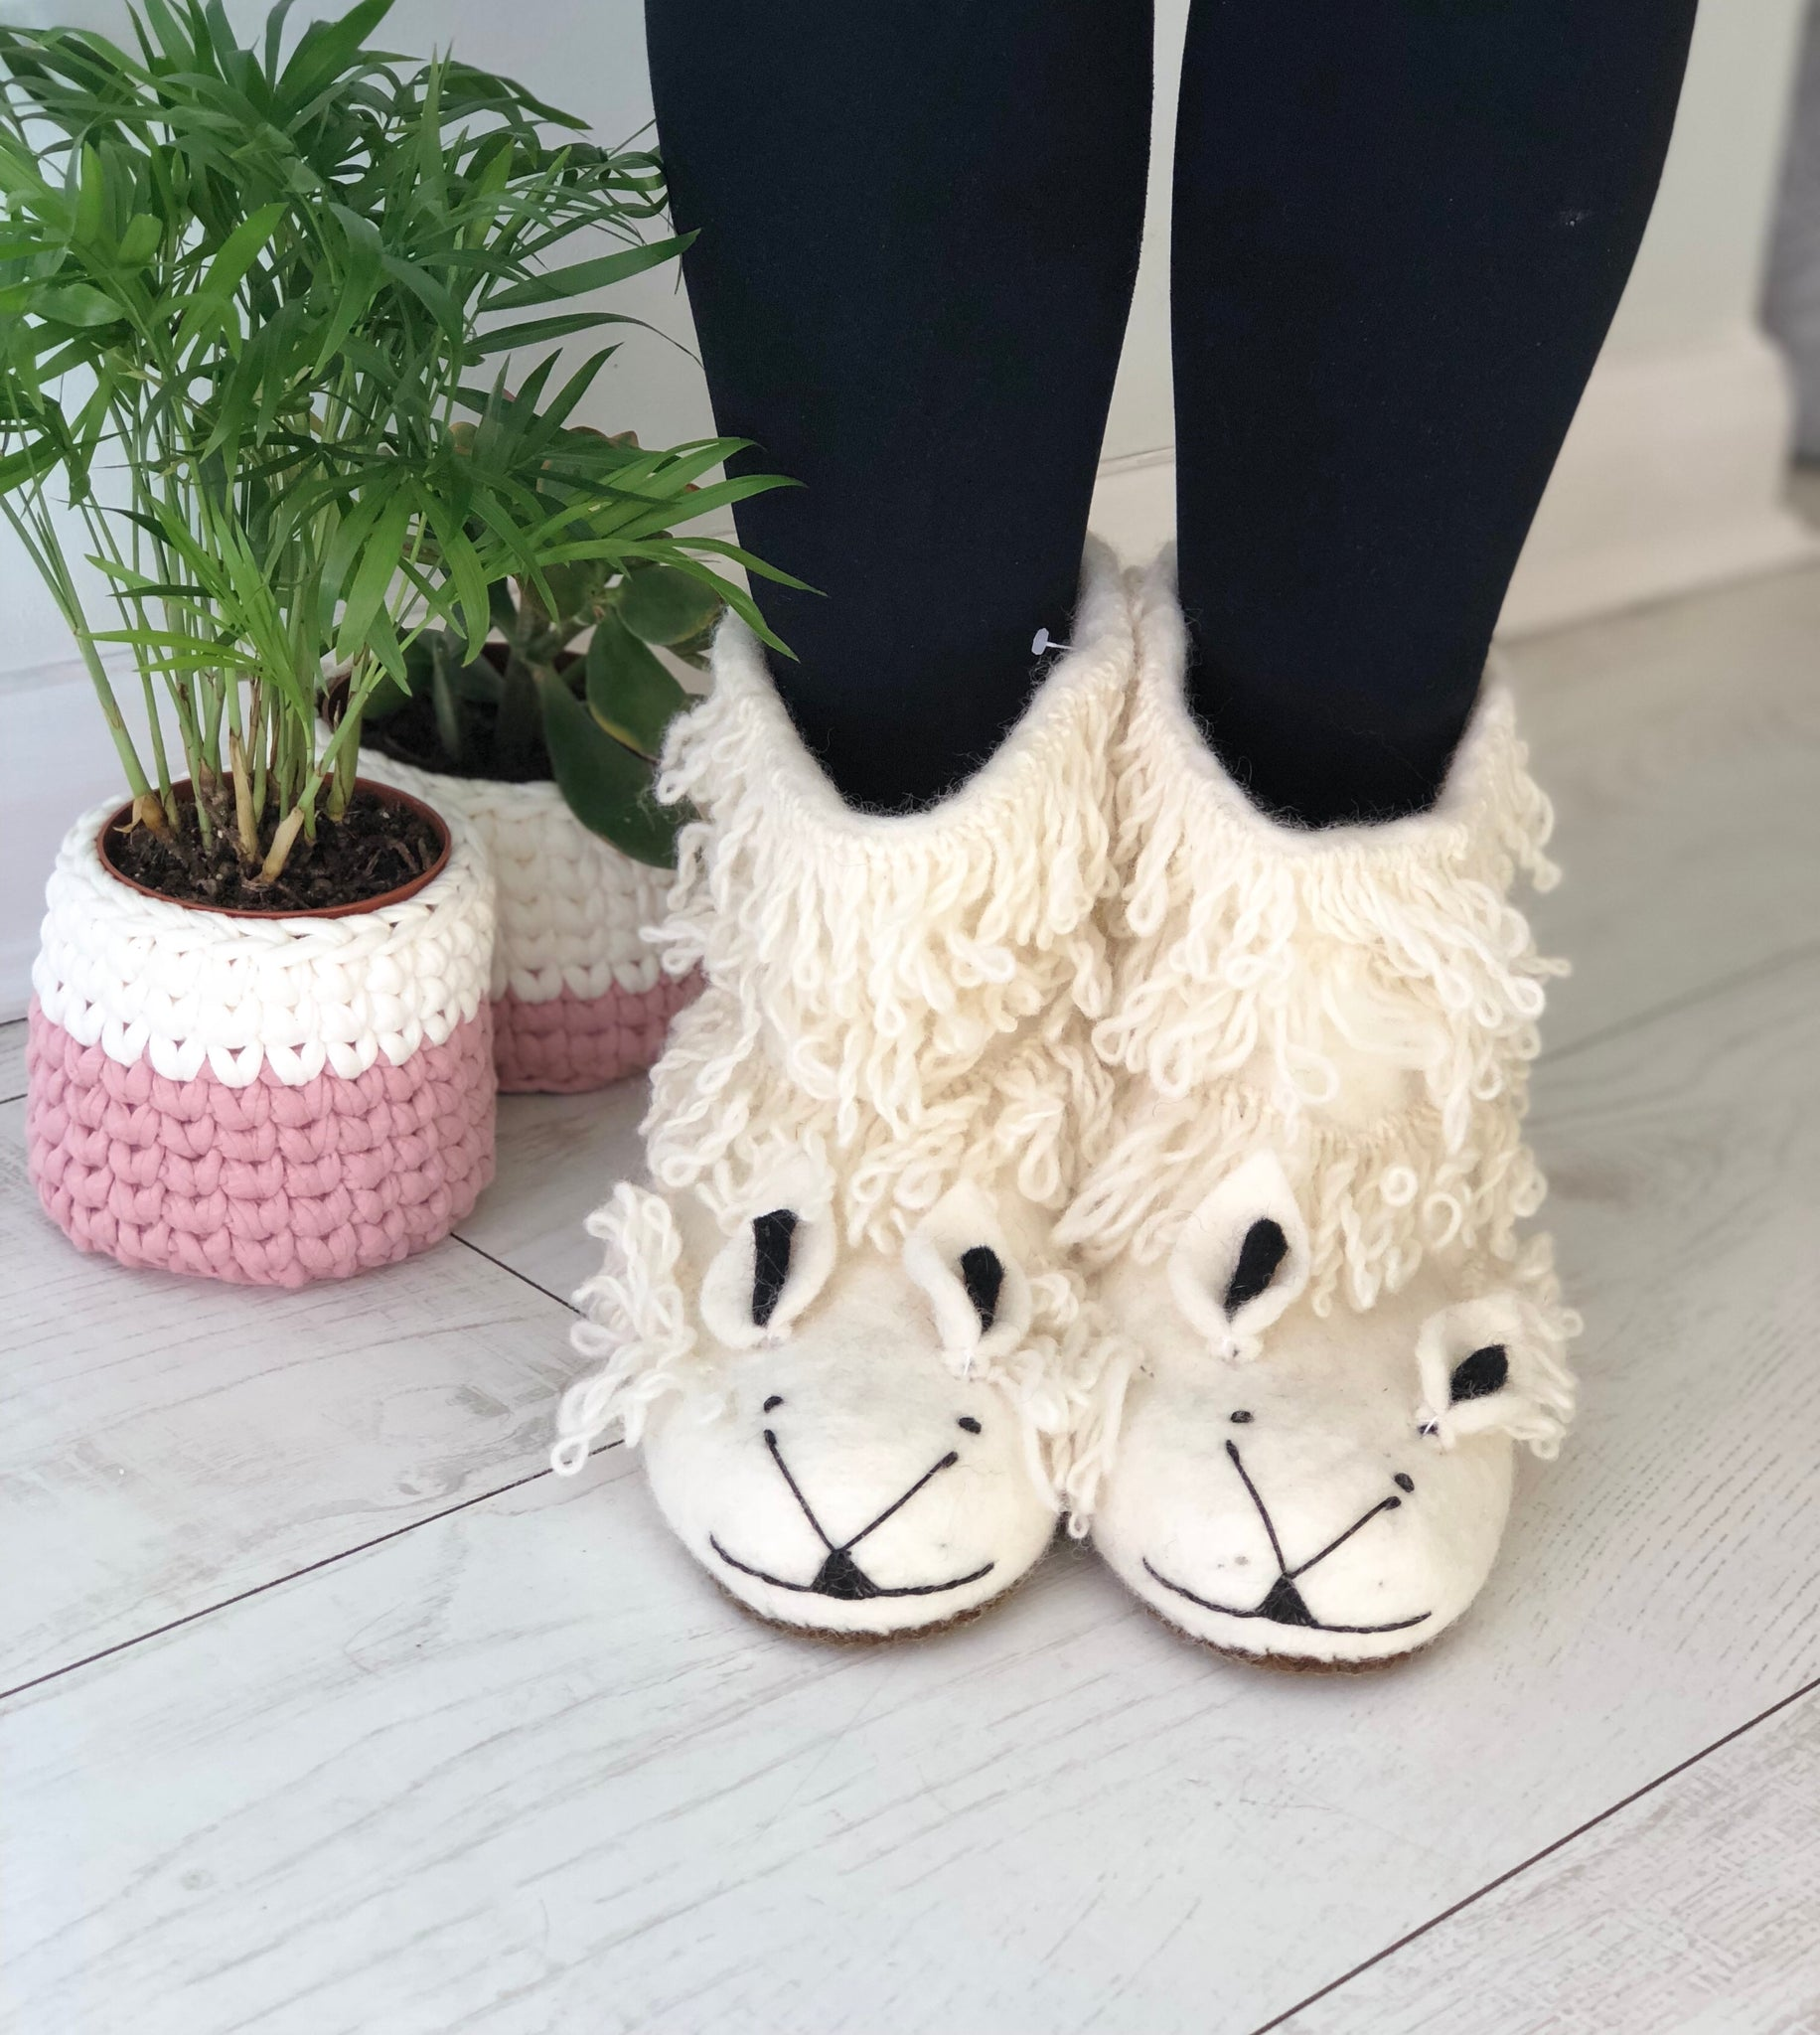 Ewe Will Love these Felt Sheep Slippers - Adult Sizes